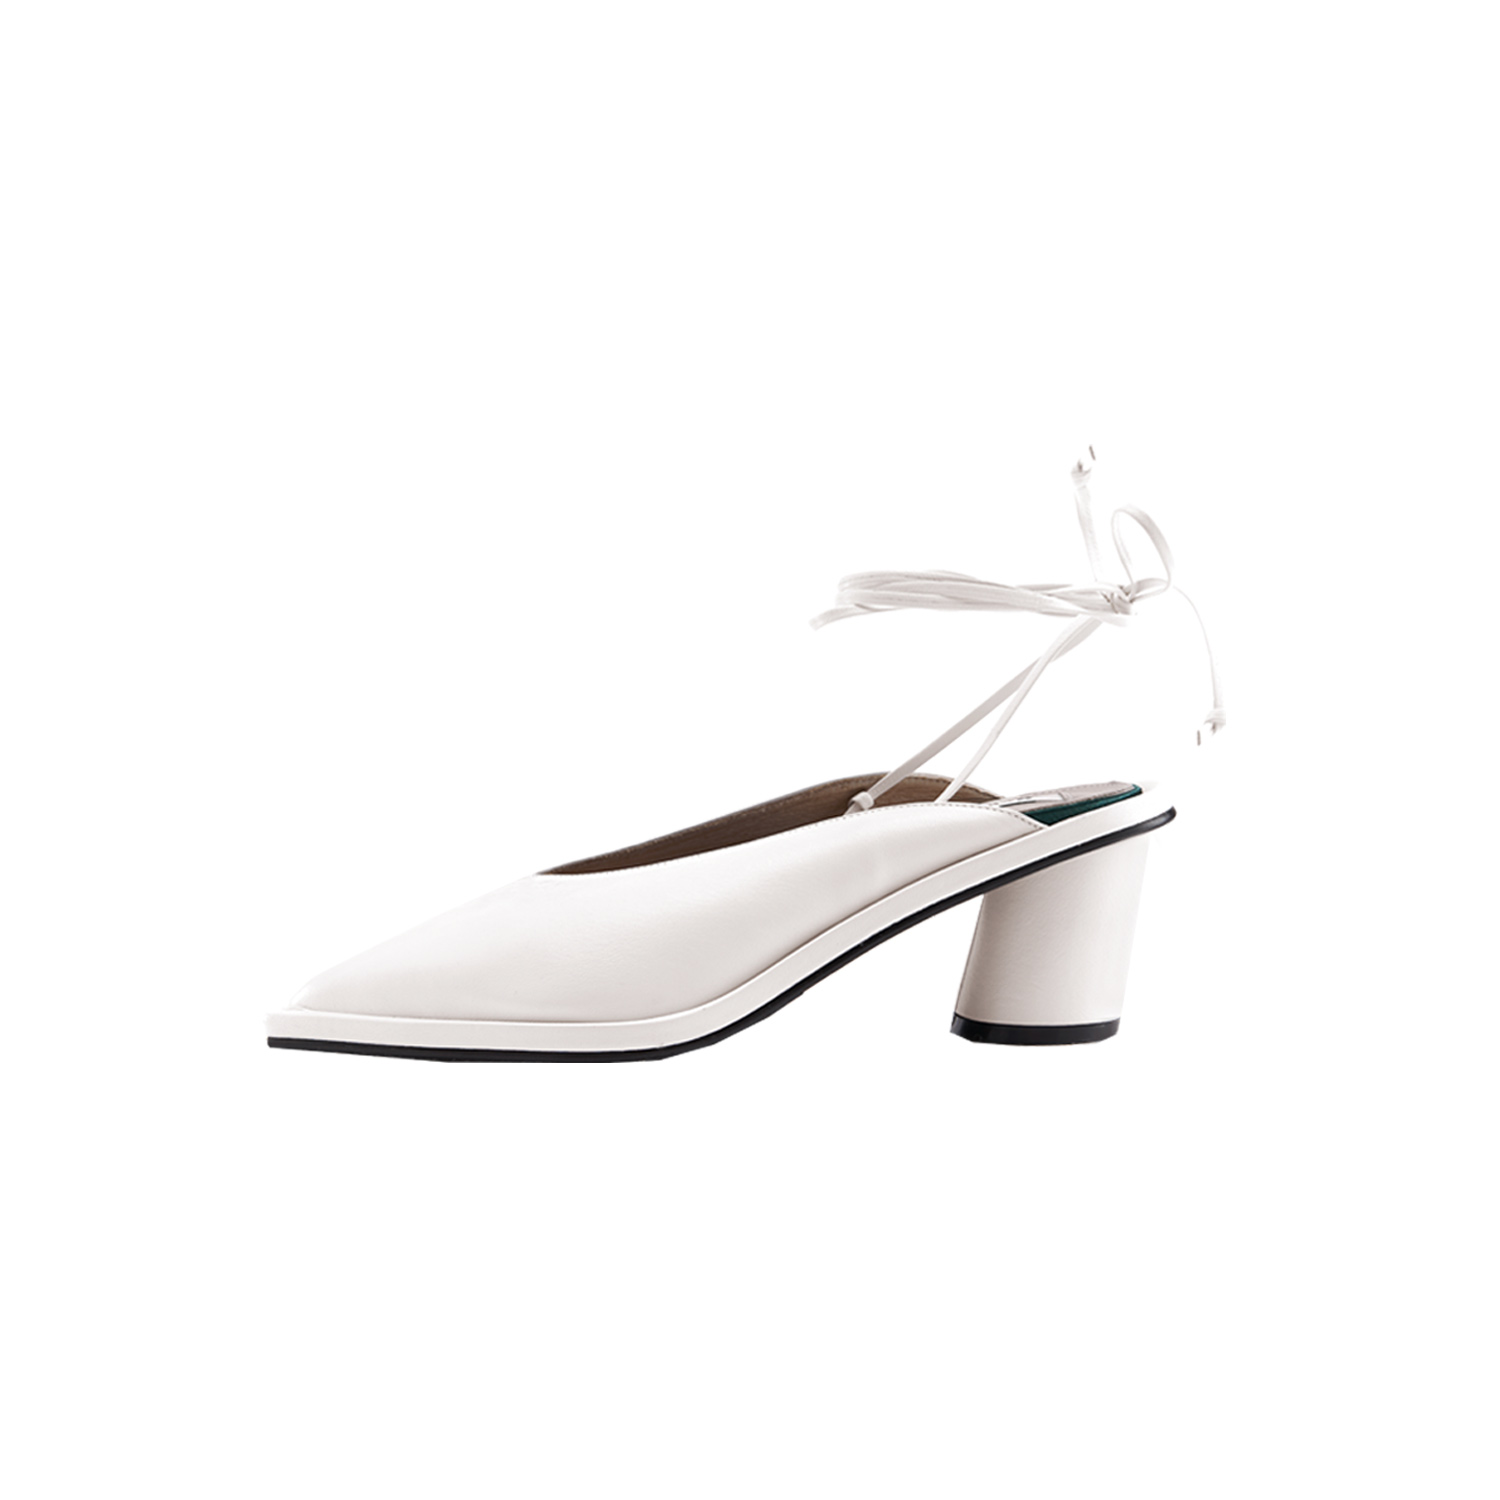 RL1-SH021 / Clean Pumps Mules